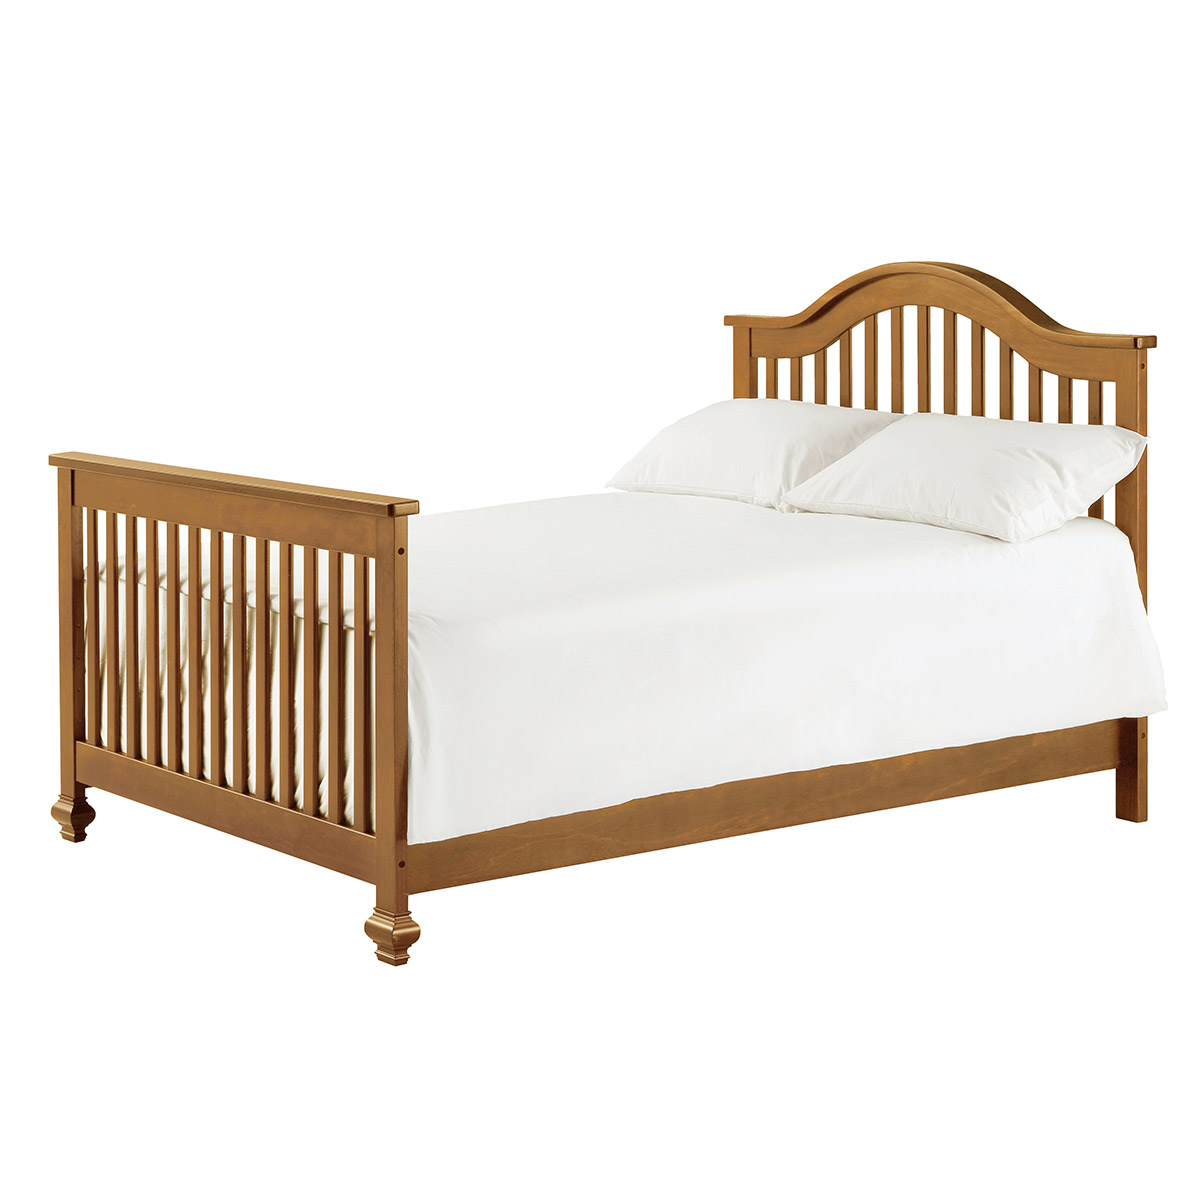 Convertible crib toddler bed - Davinci Clover 4 In 1 Convertible Crib With Toddler Bed Conversion Kit In Chestnut Free Shipping